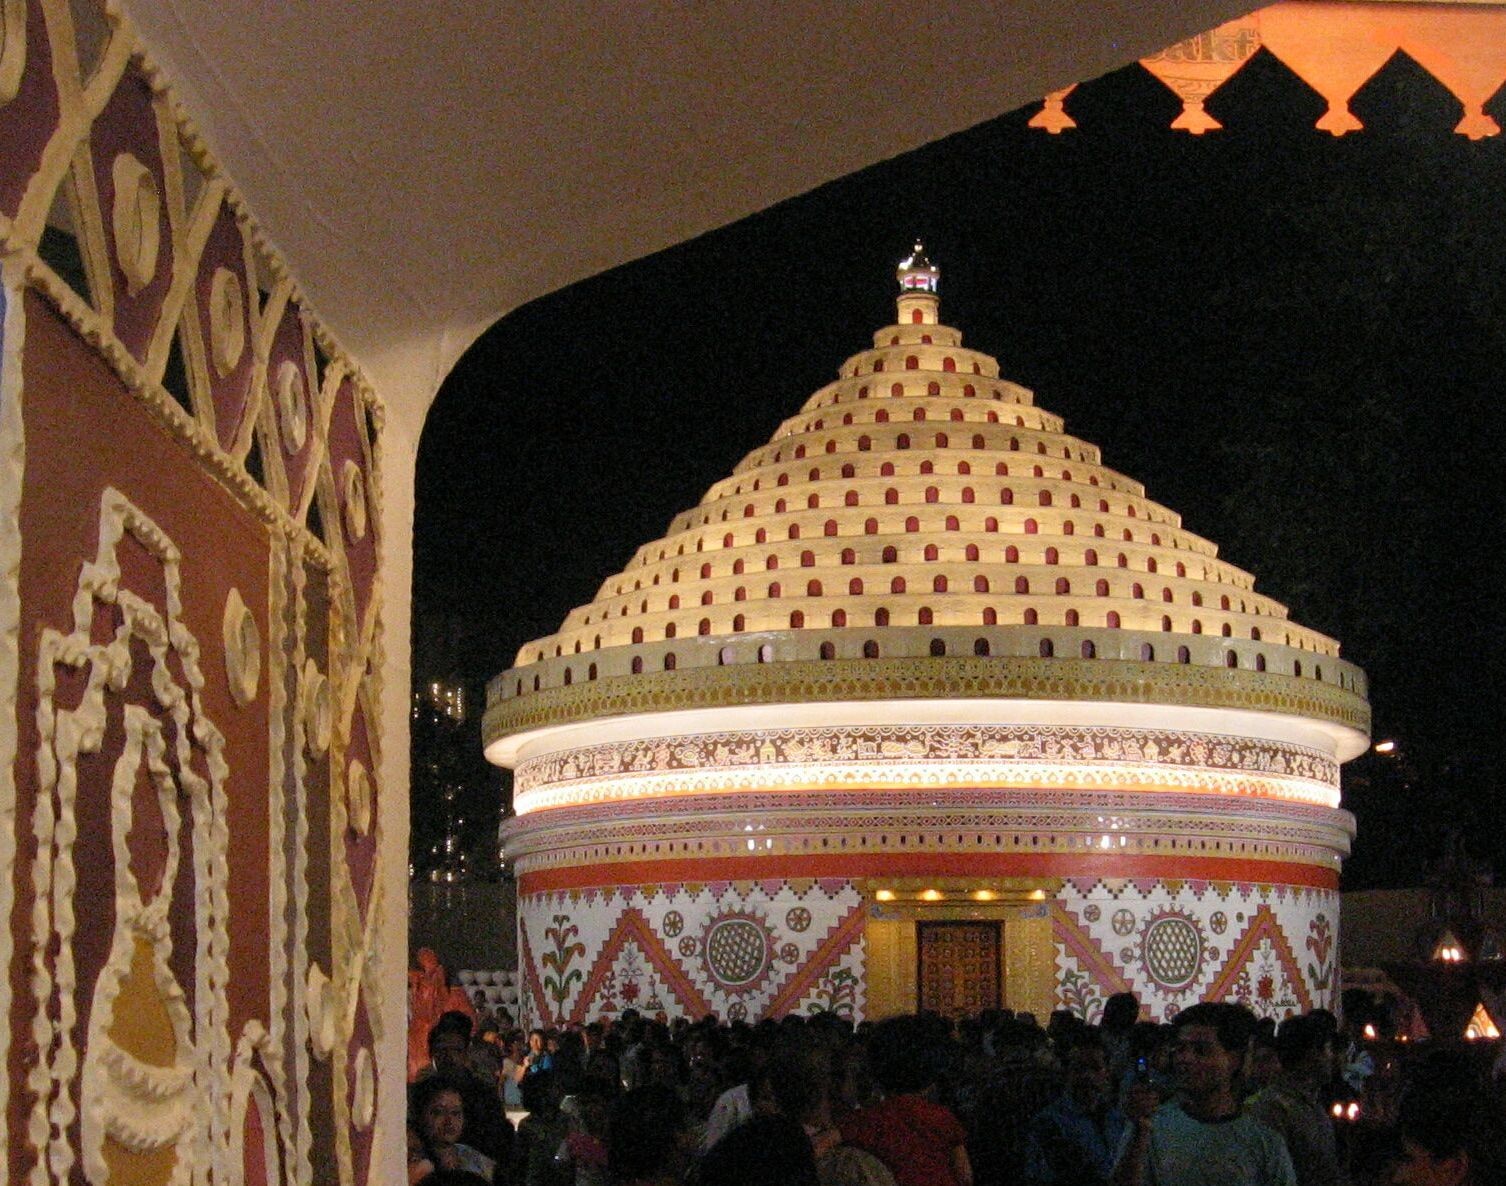 Durga puja 2007 durga puja pandal by suruchi sangha in new alipore kolkata adopting the gurjari handicraft style of western gujarat this pandal which has consistently thecheapjerseys Image collections